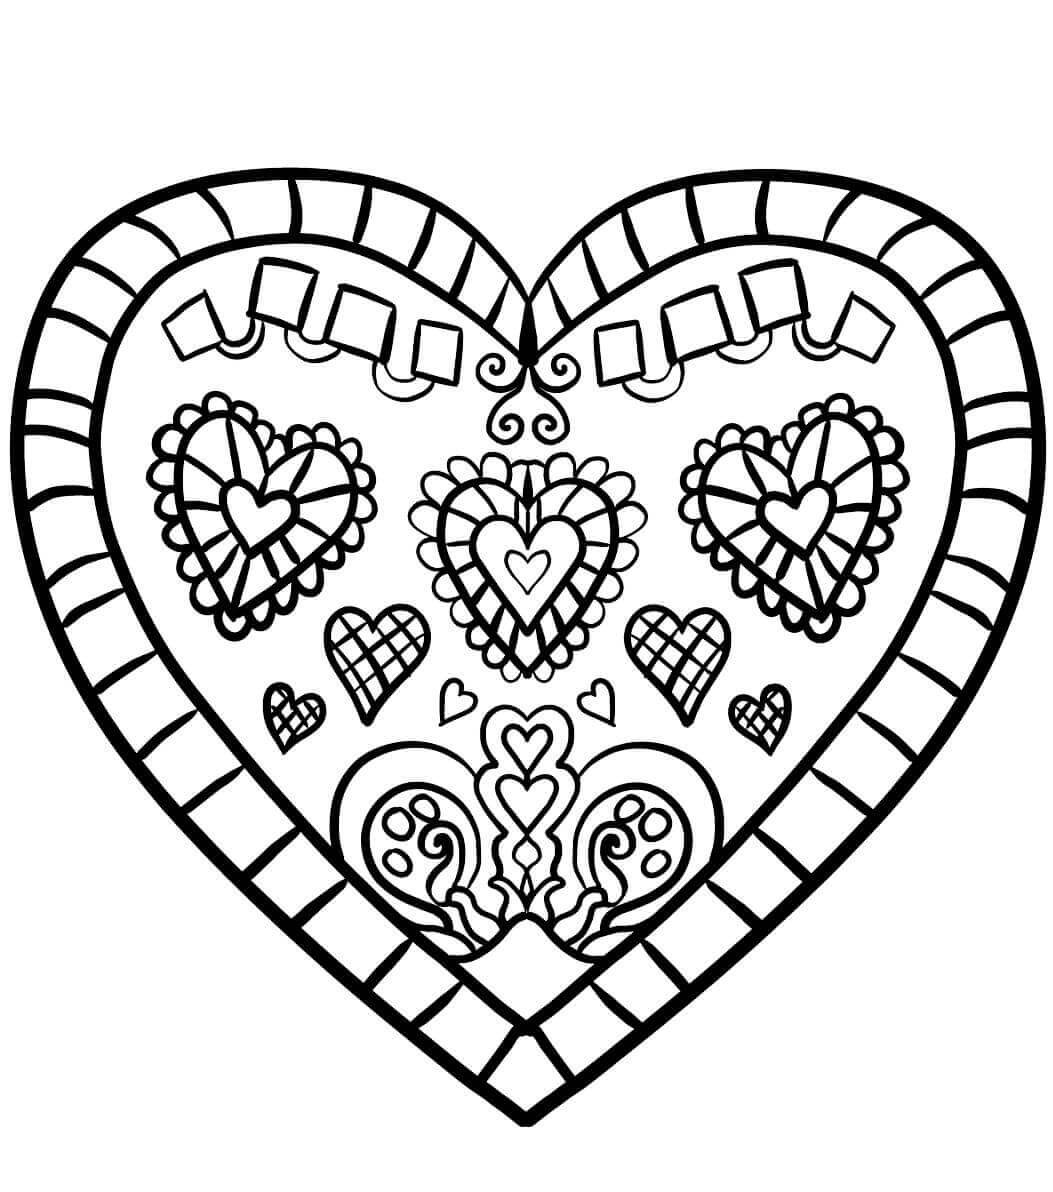 Coloring Book Pages Heart  35 Free Printable Heart Coloring Pages